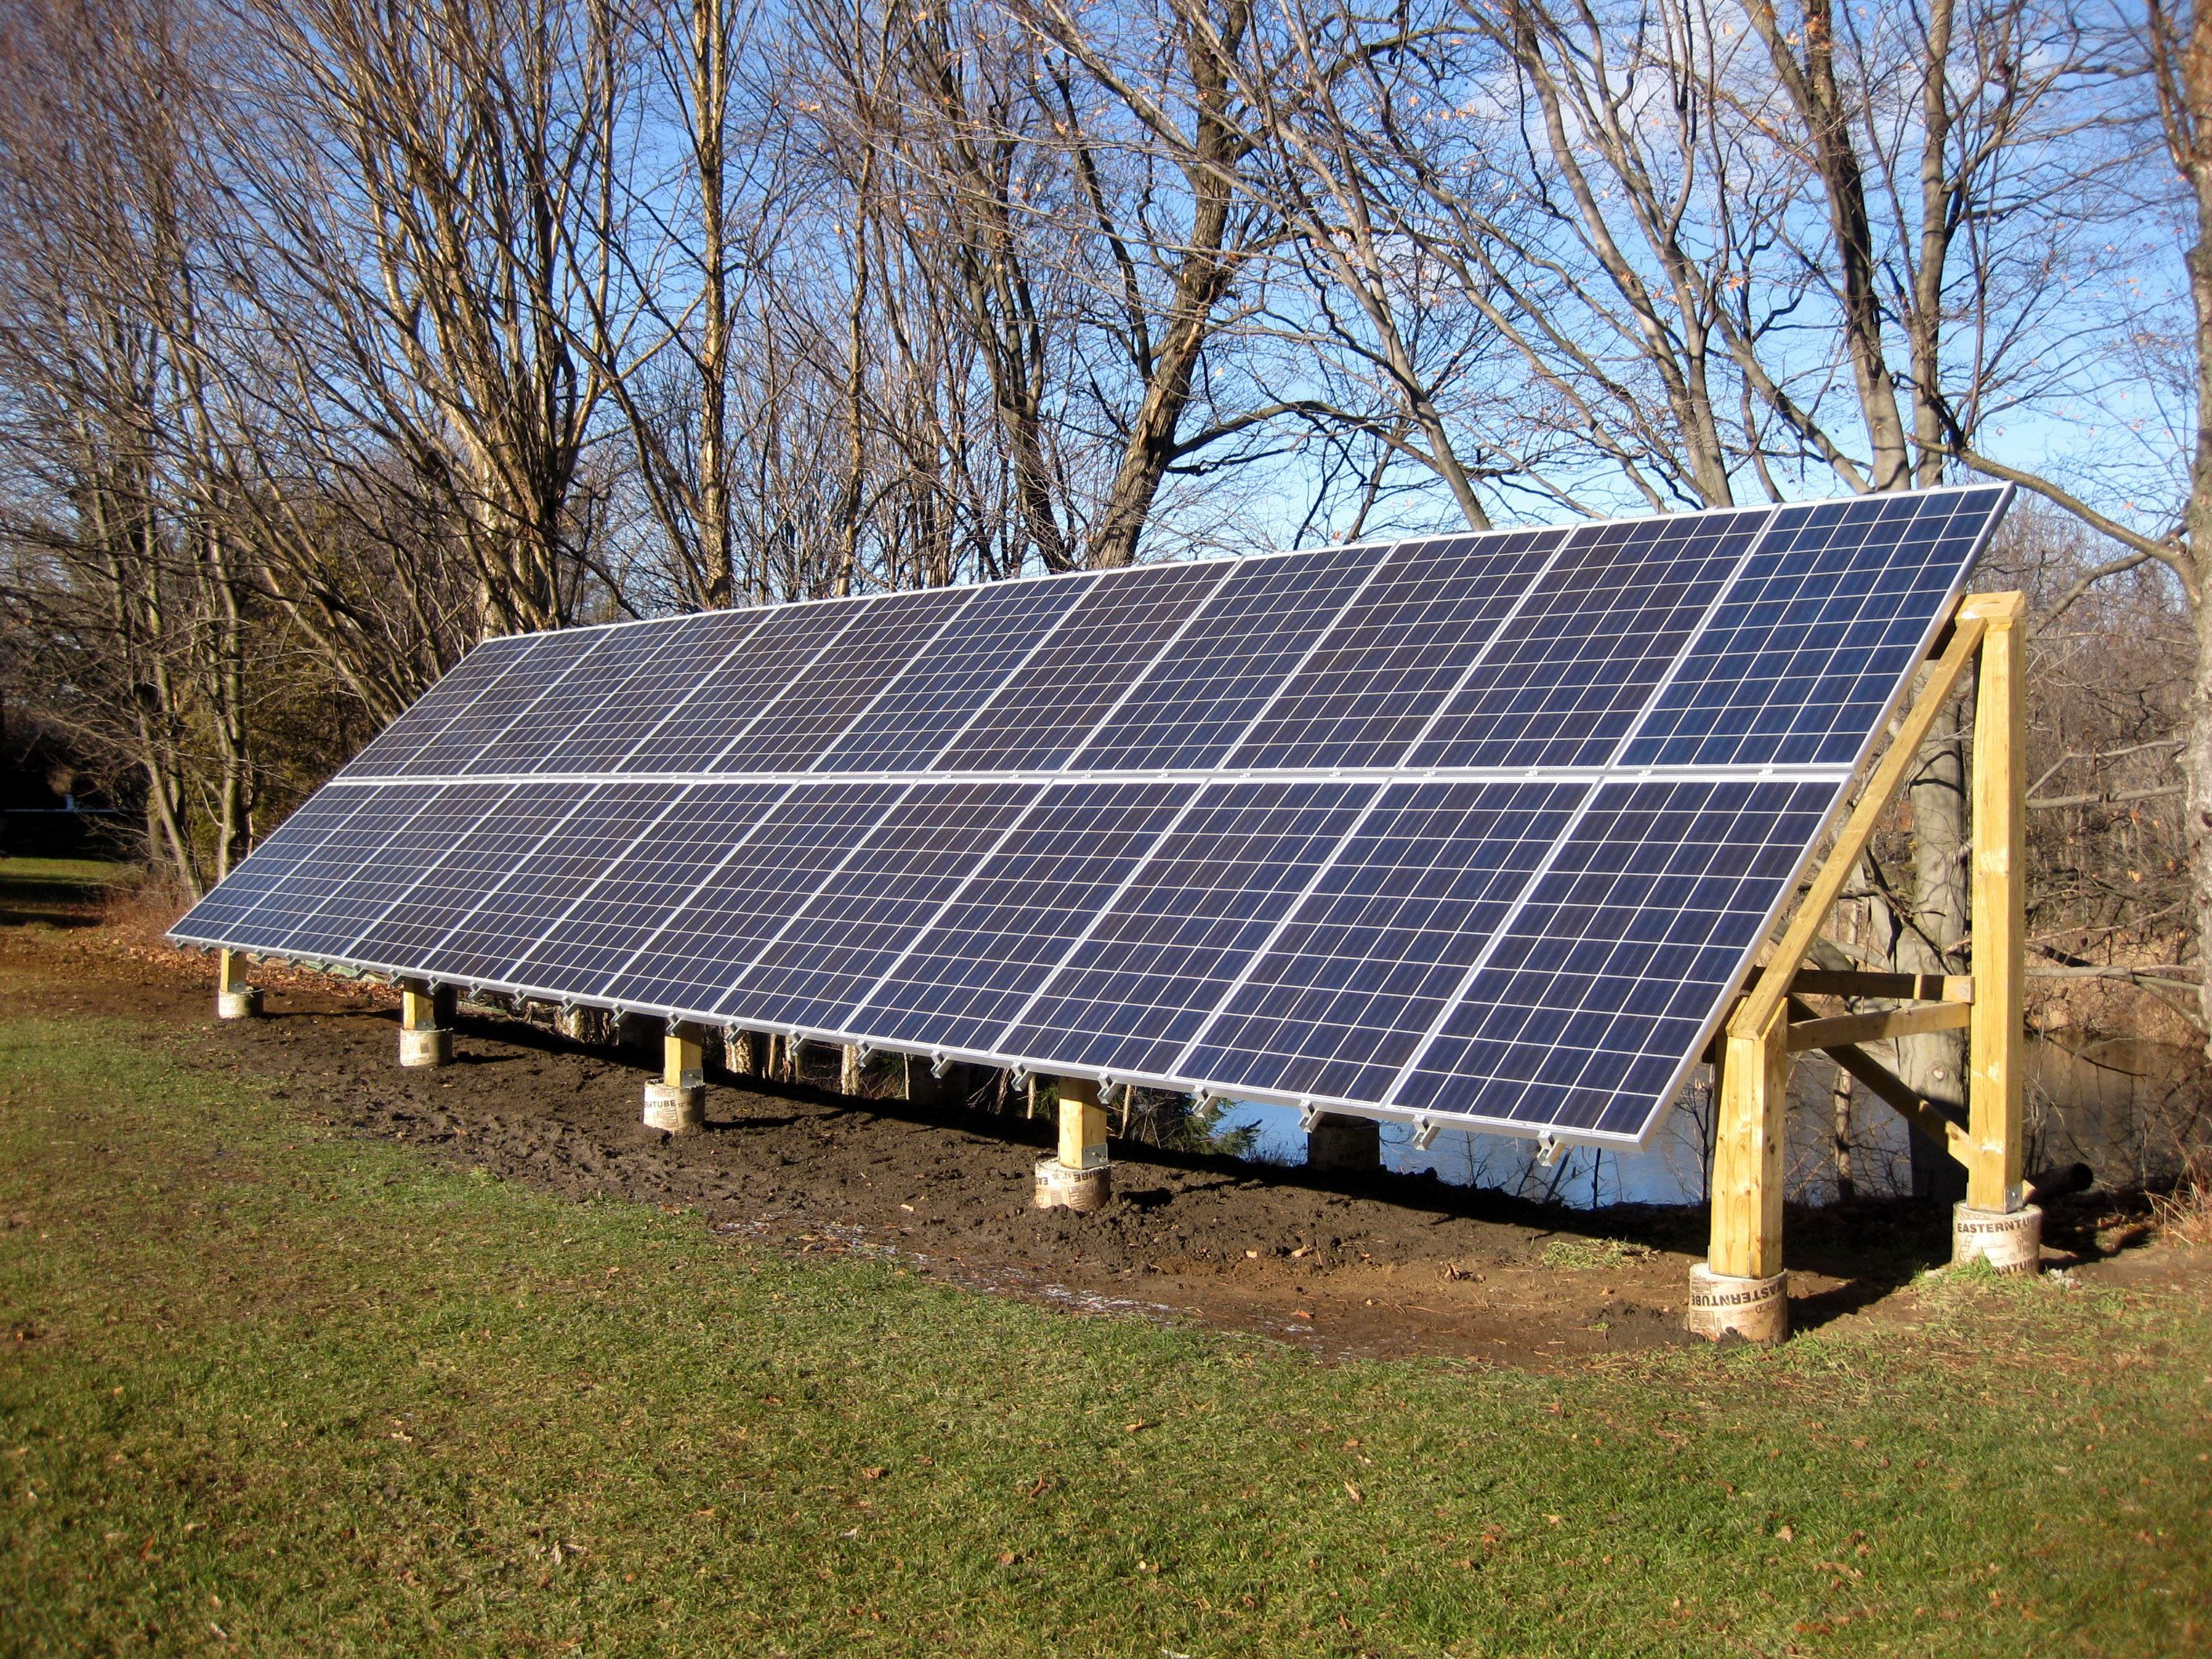 It S Possible To Build Your Own Wood Groundmount For Your Solar System Easy To Brush The Snow Off In 2020 Solar Panels Roof Buy Solar Panels Solar Panels For Sale